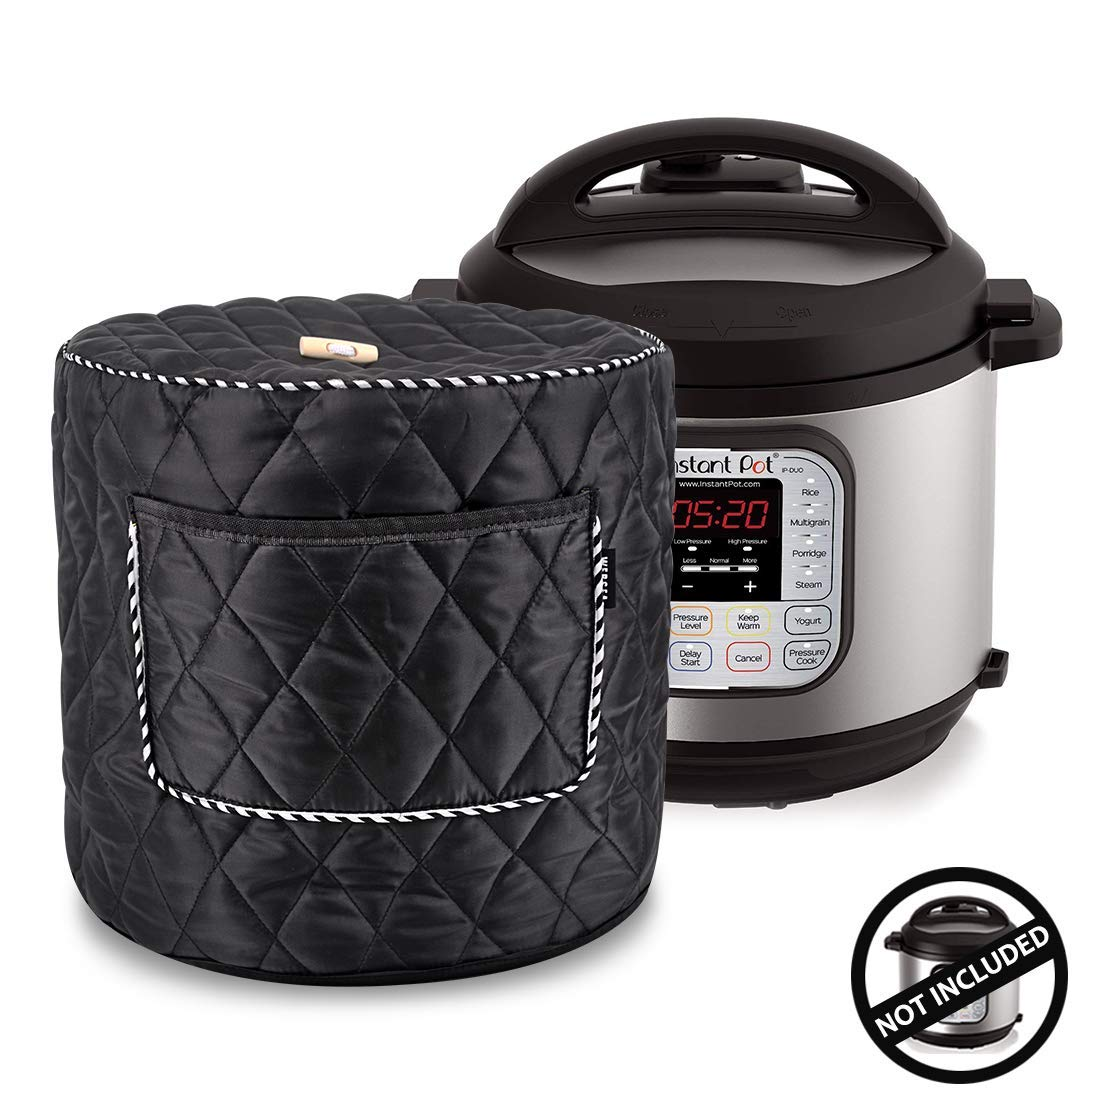 Bigens Appliance Cover for 6/8 Quart Instant Pot and Electric Pressure Cooker with Front Pocket for Accessories (6 Quart)